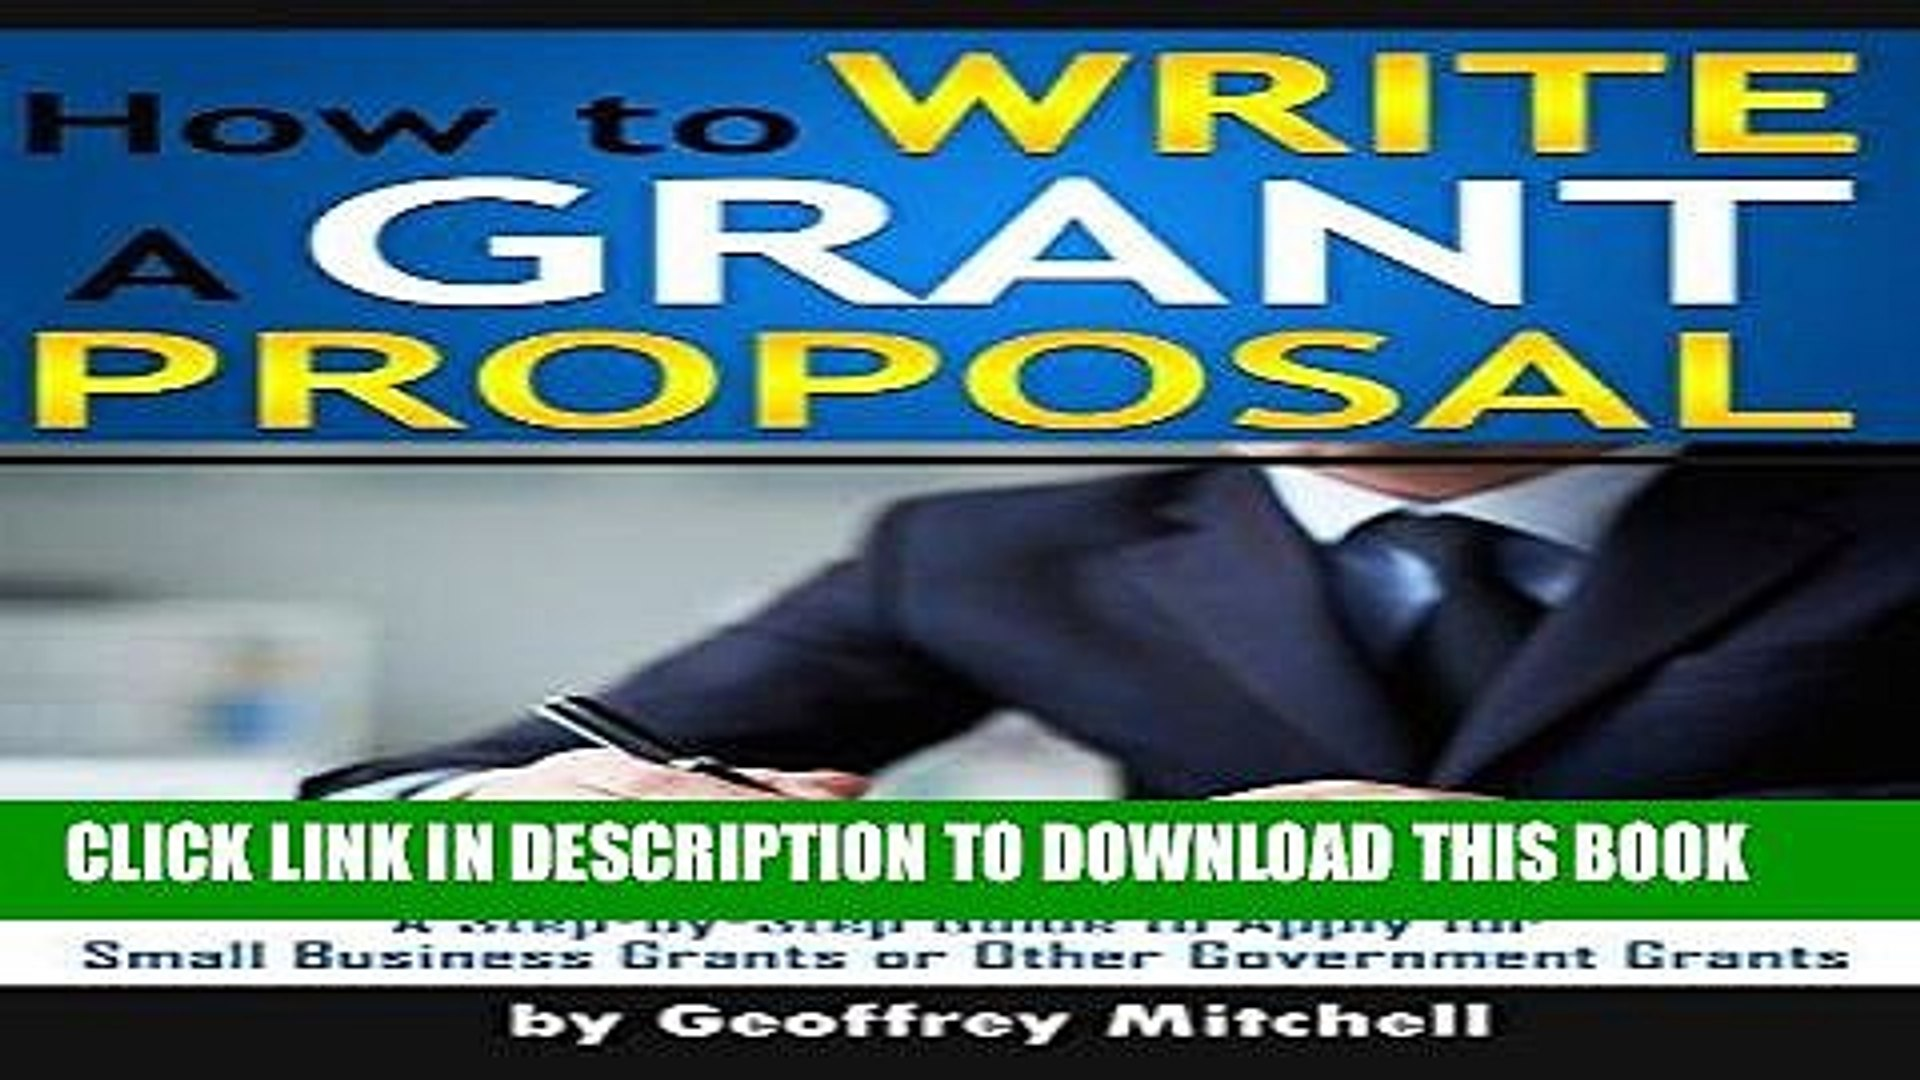 Ebook How to Write a Grant Proposal: A Step-by-Step Guide to Apply for Small Business Grants or